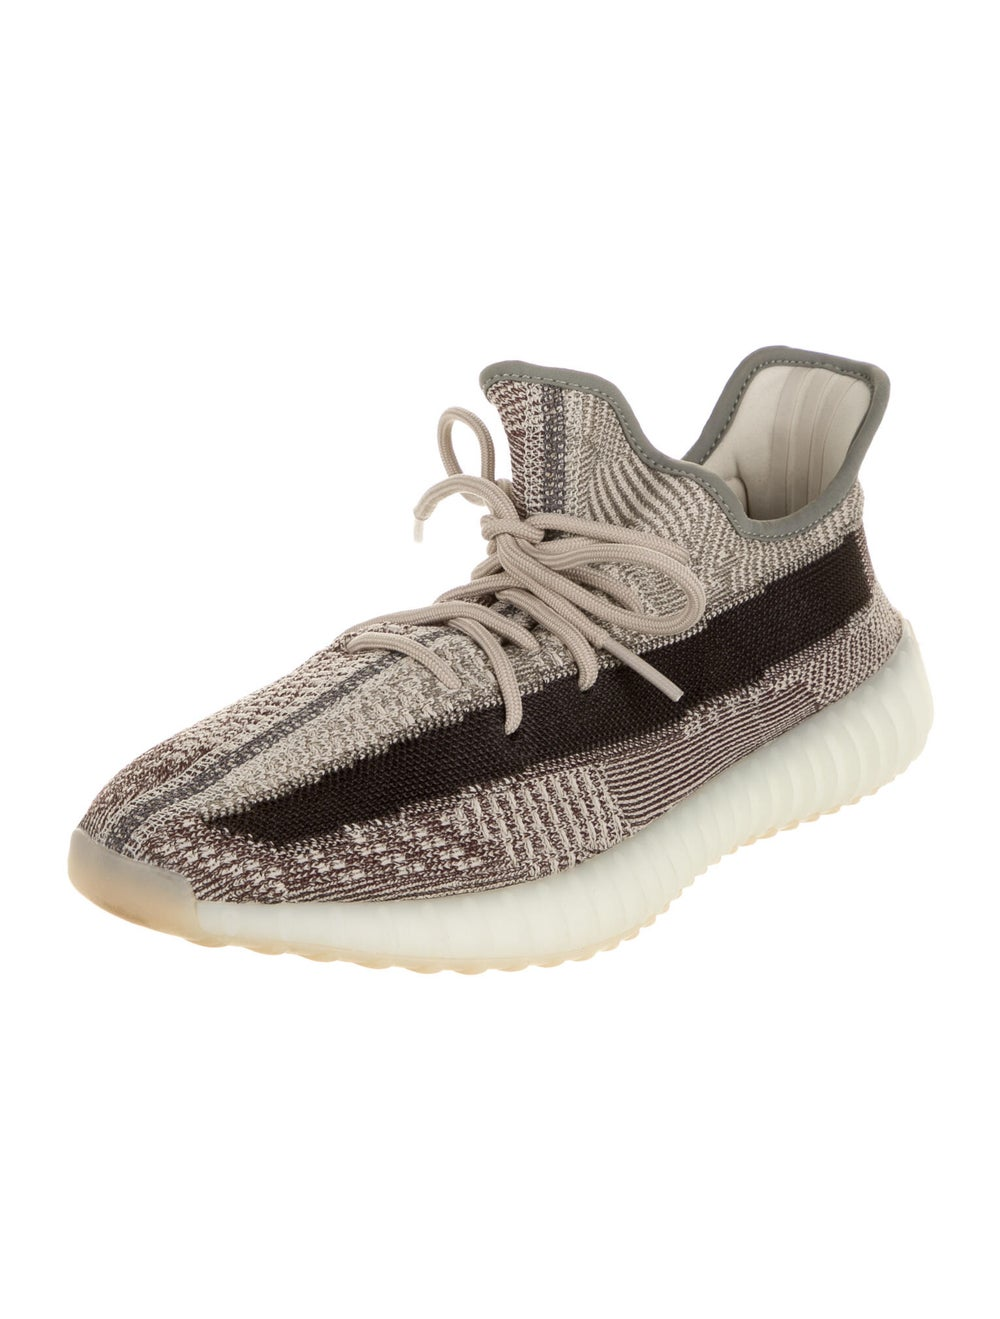 Yeezy x adidas Boost 350 V2 Zyon Sneakers Sneakers - image 2